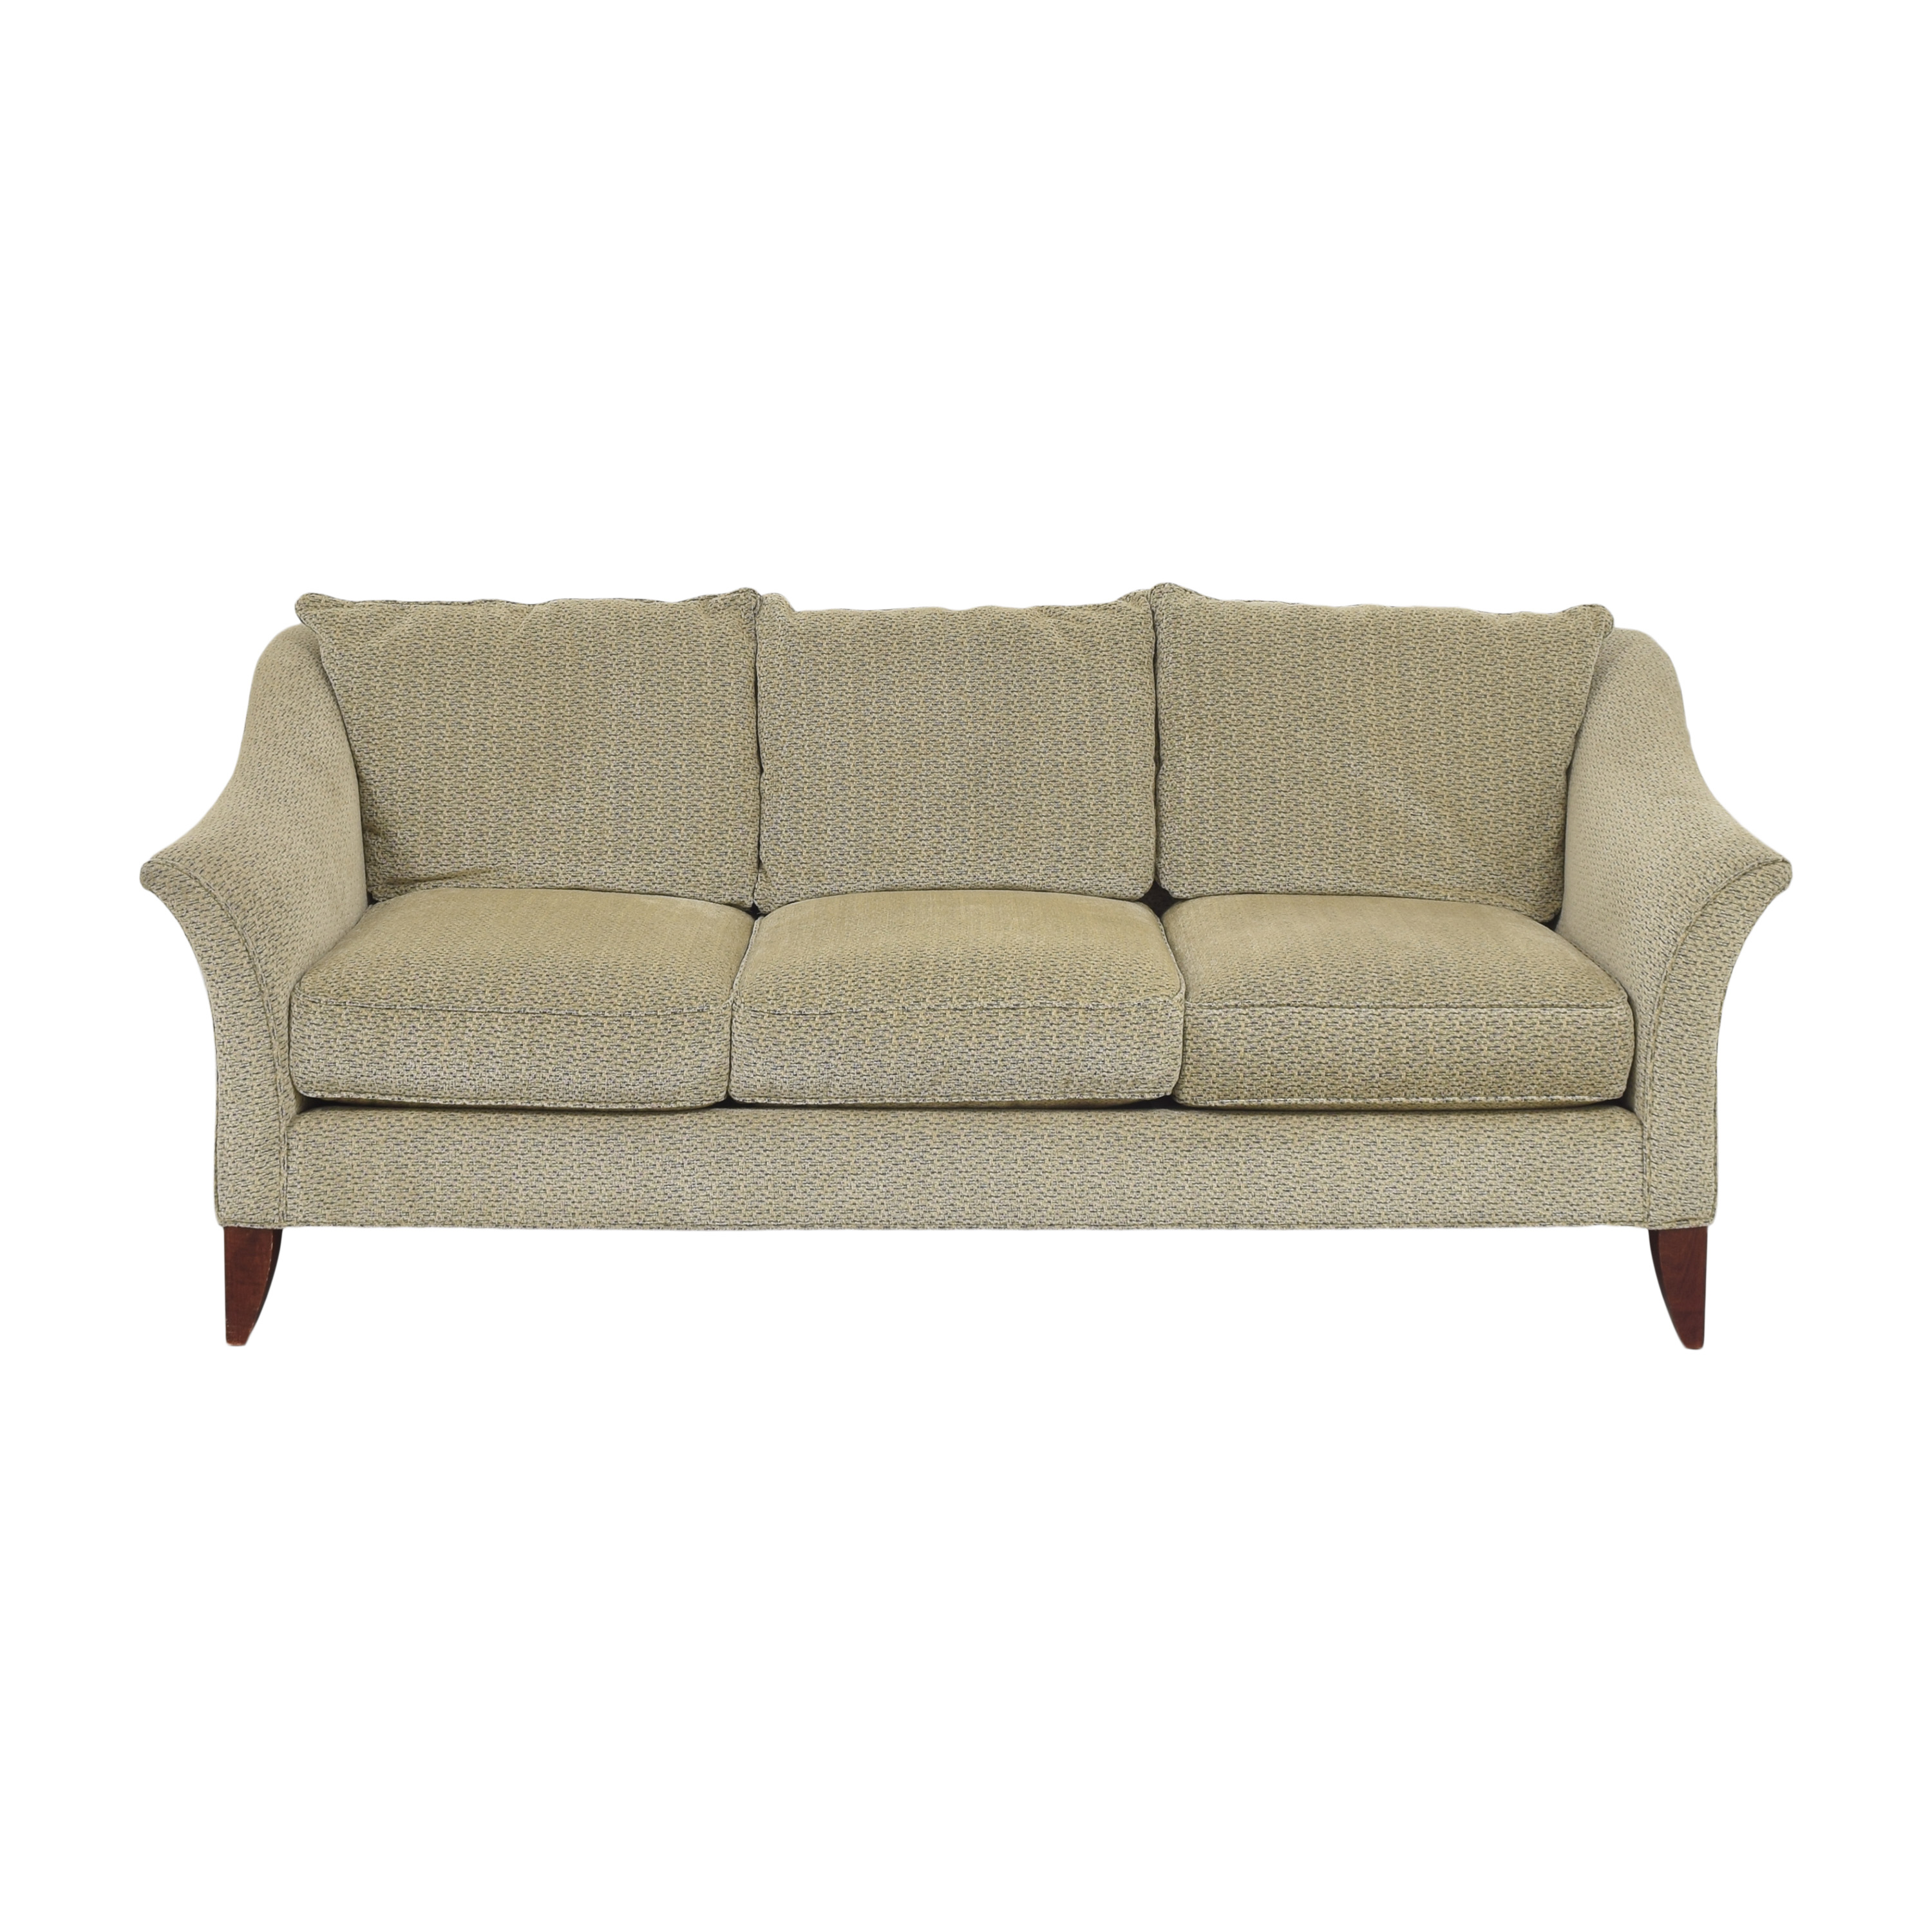 buy Maurice Villency Three Cushion Upholstered Sofa Maurice Villency